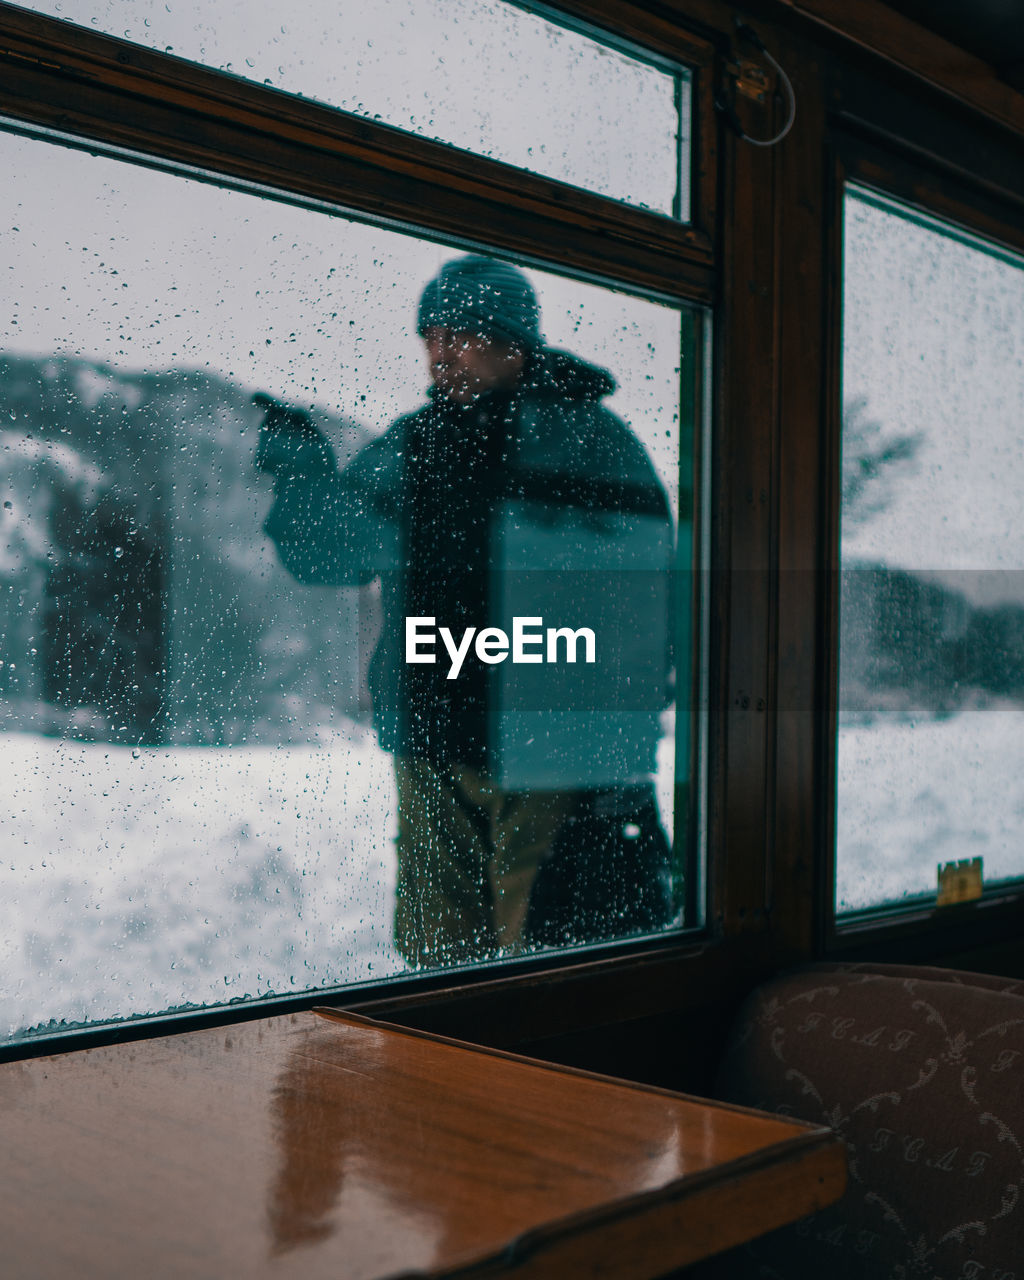 REFLECTION OF MAN LOOKING THROUGH WINDOW